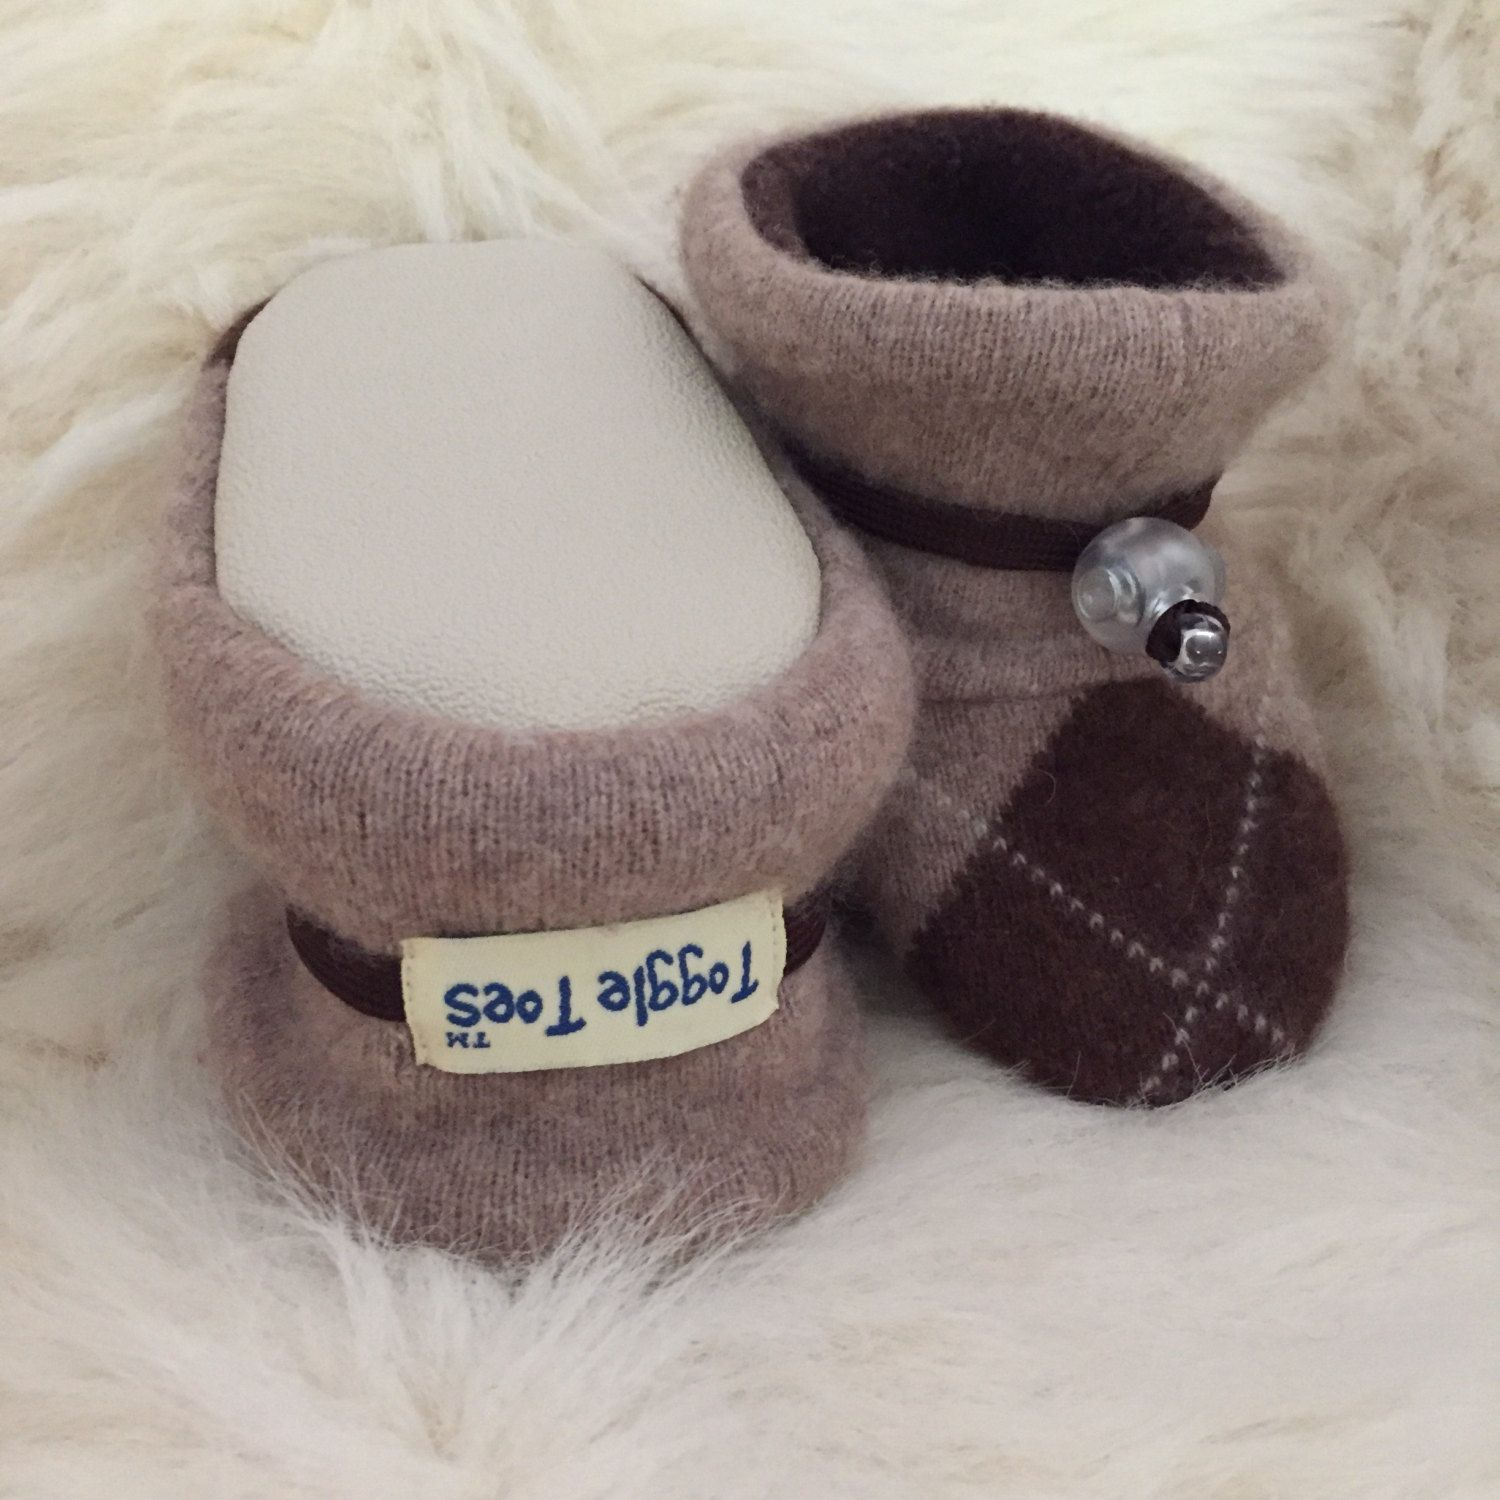 Walkers soft sole shoes baby booties non slip in Toddler size 12